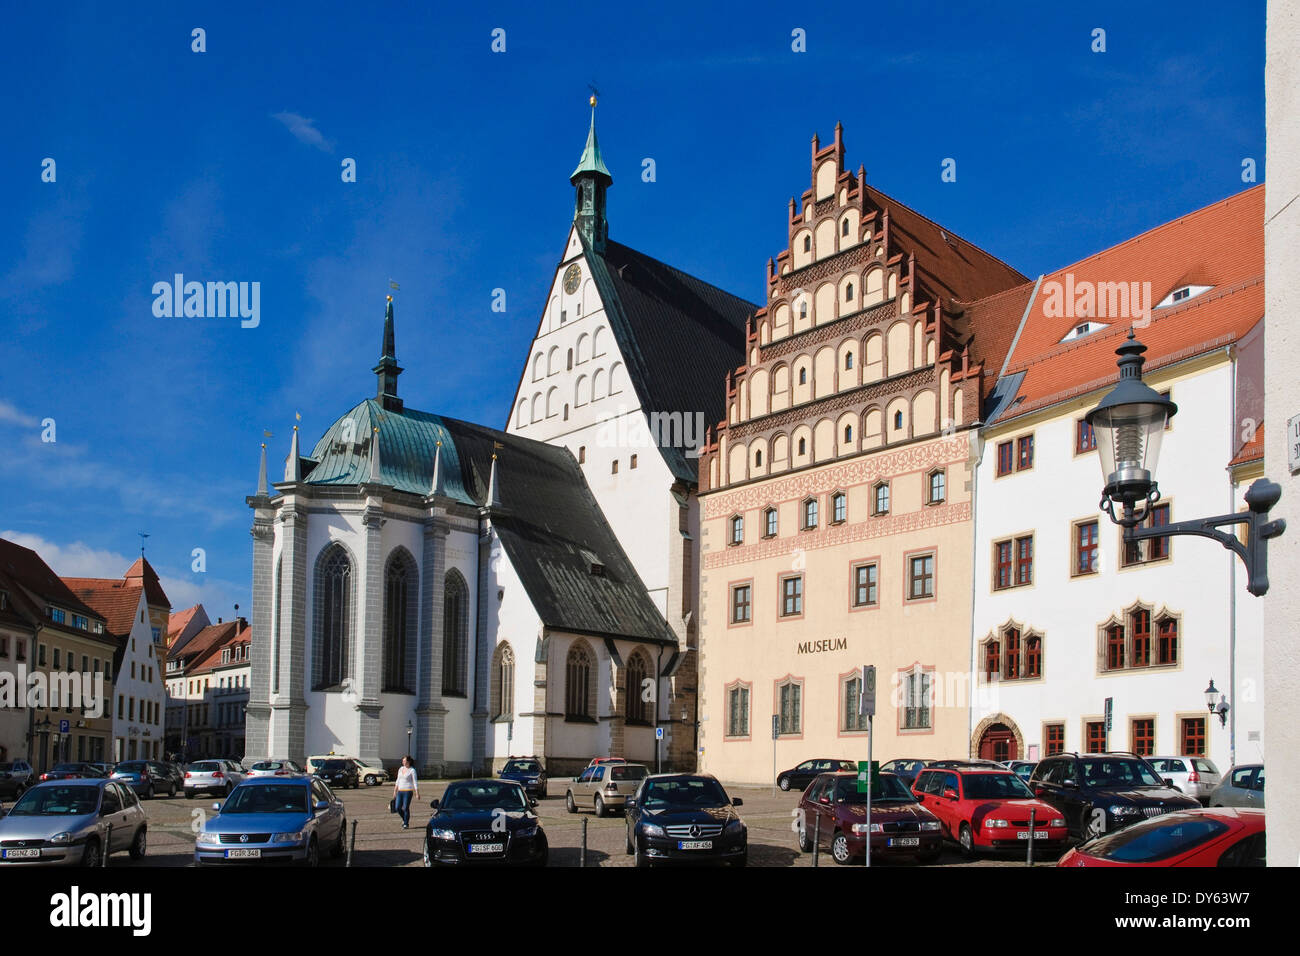 Untermarkt with cathedral and museum, Freiberg, Saxony, Germany, Europe - Stock Image